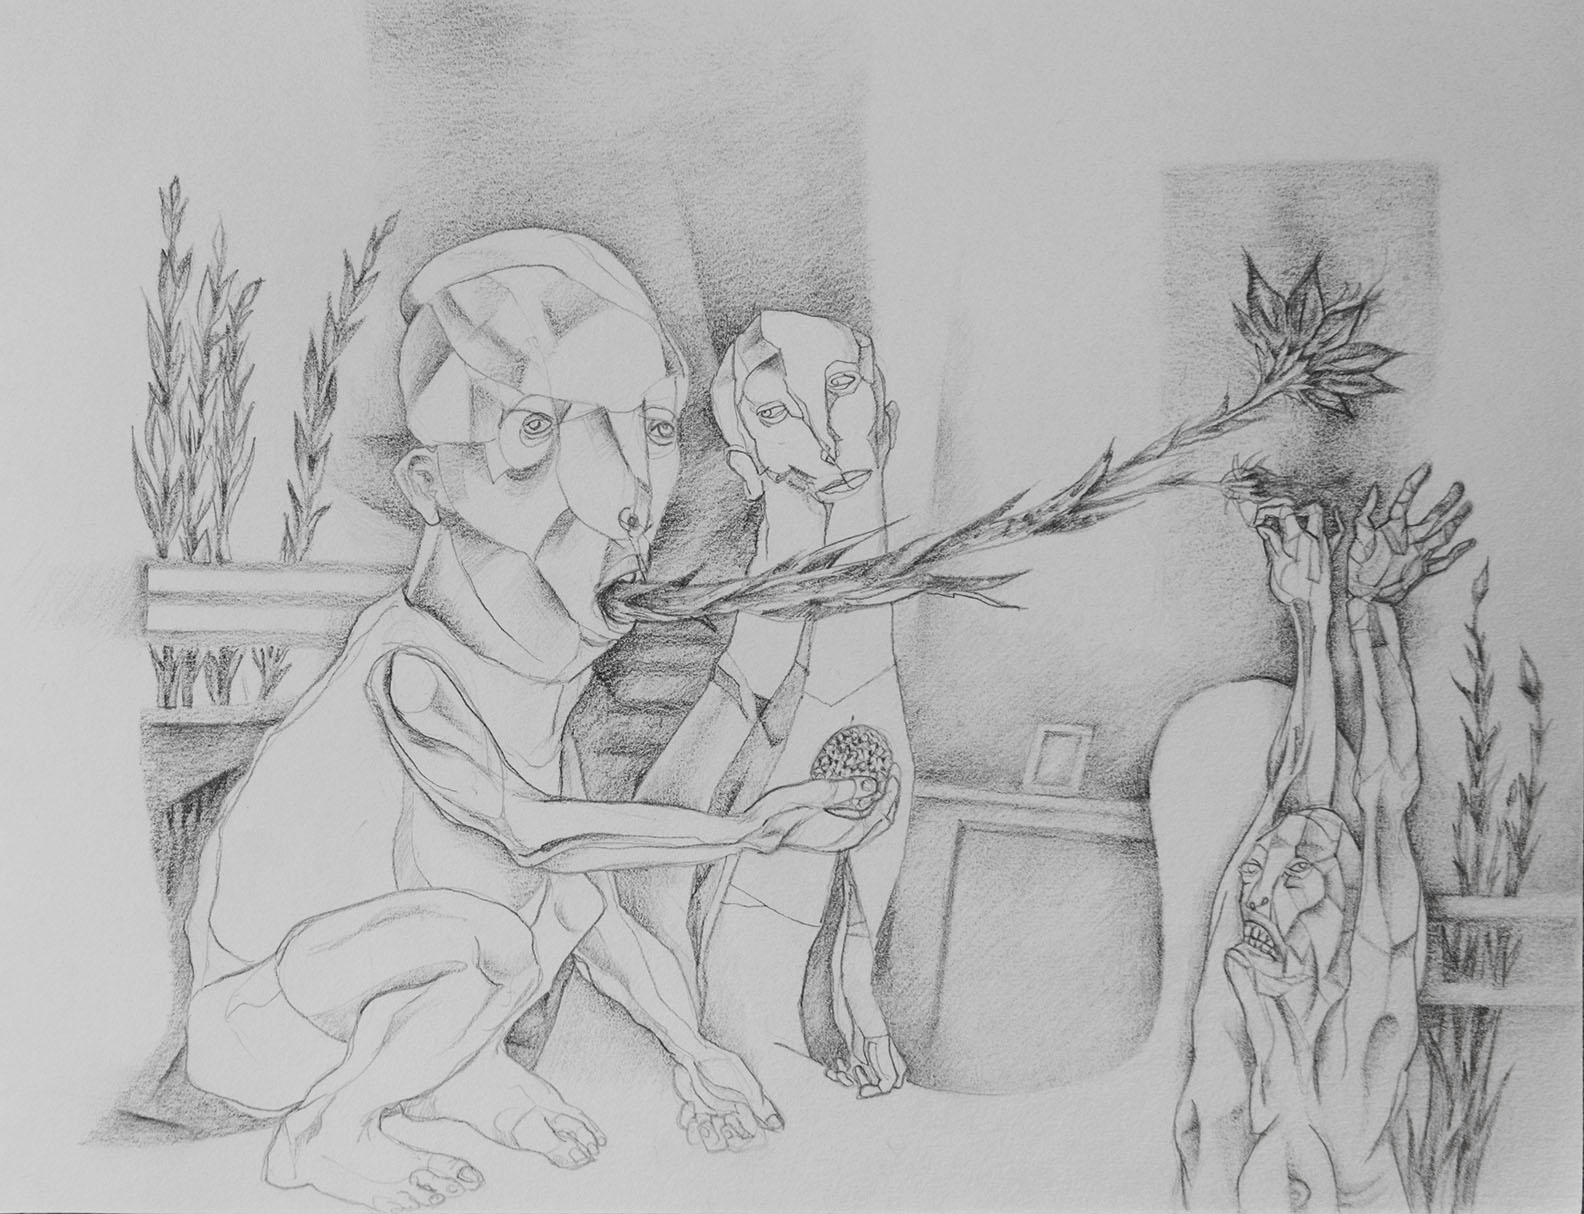 pencil on paper, 2014